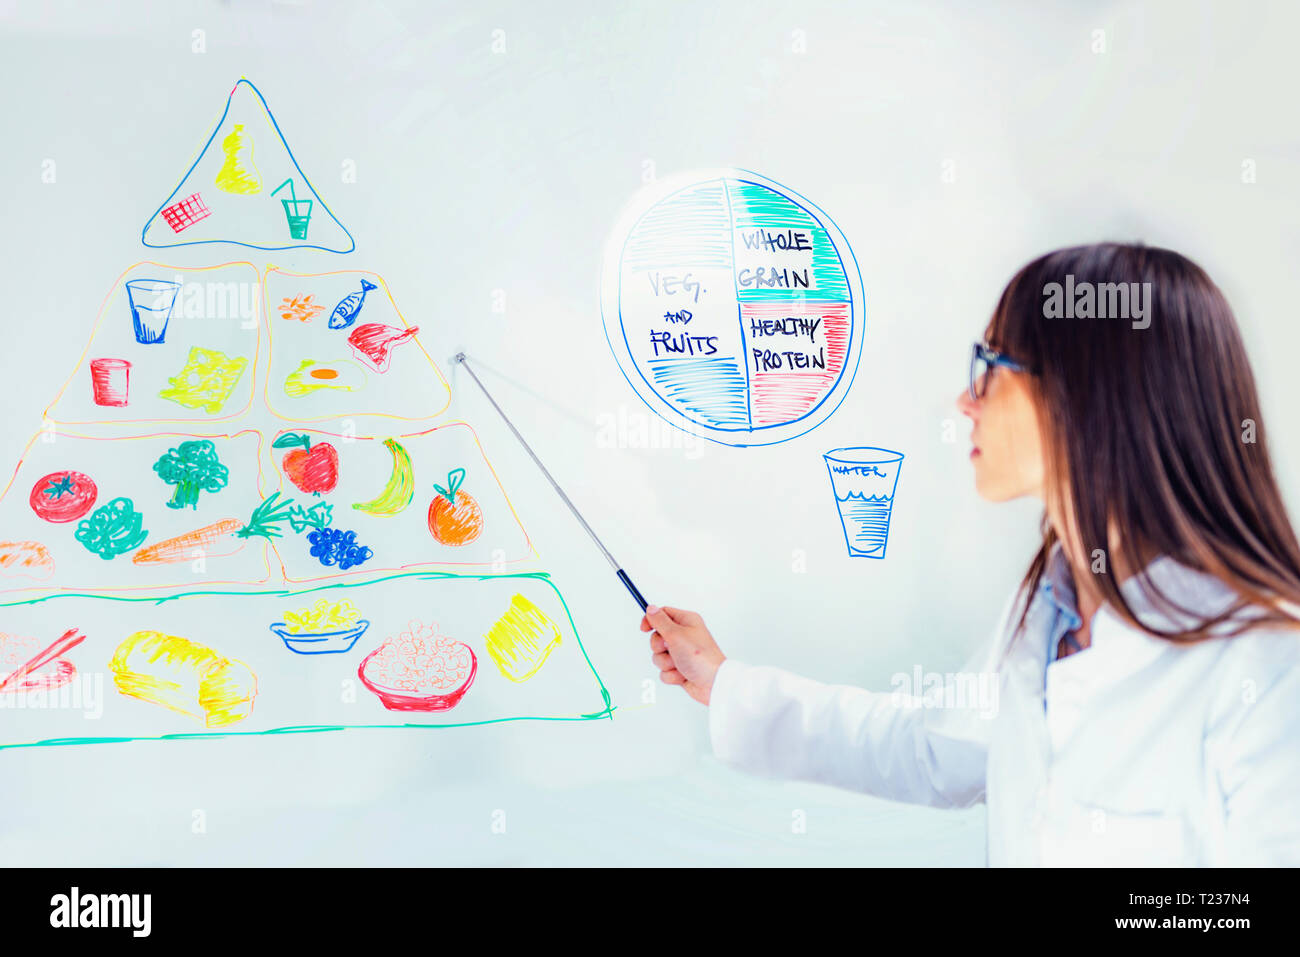 Nutritionist with food pyramid. - Stock Image